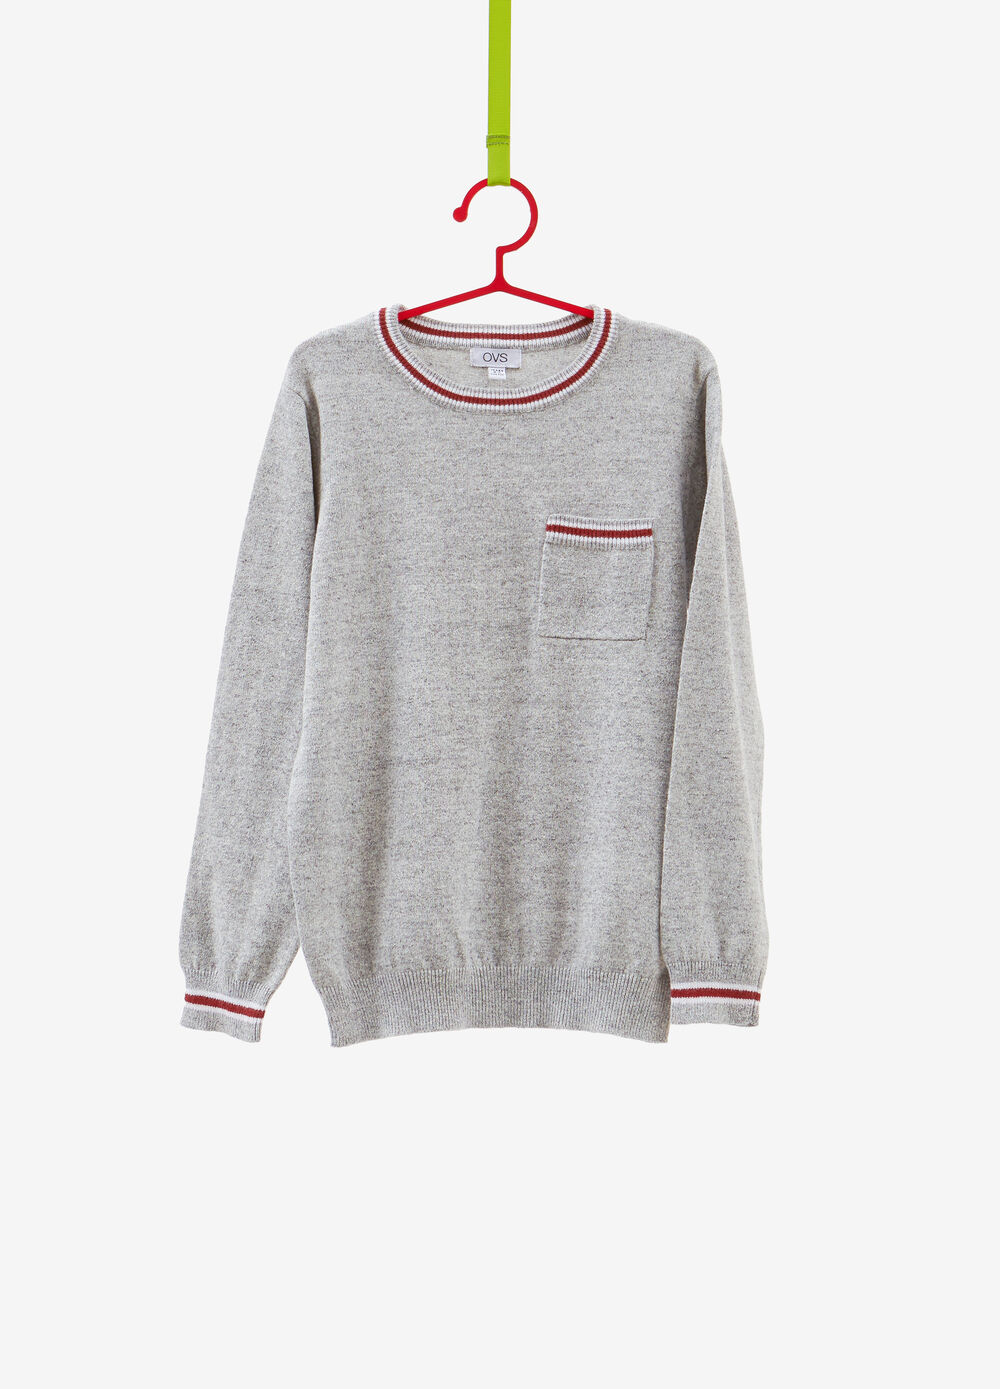 Knitted cotton pullover with striped ribbing